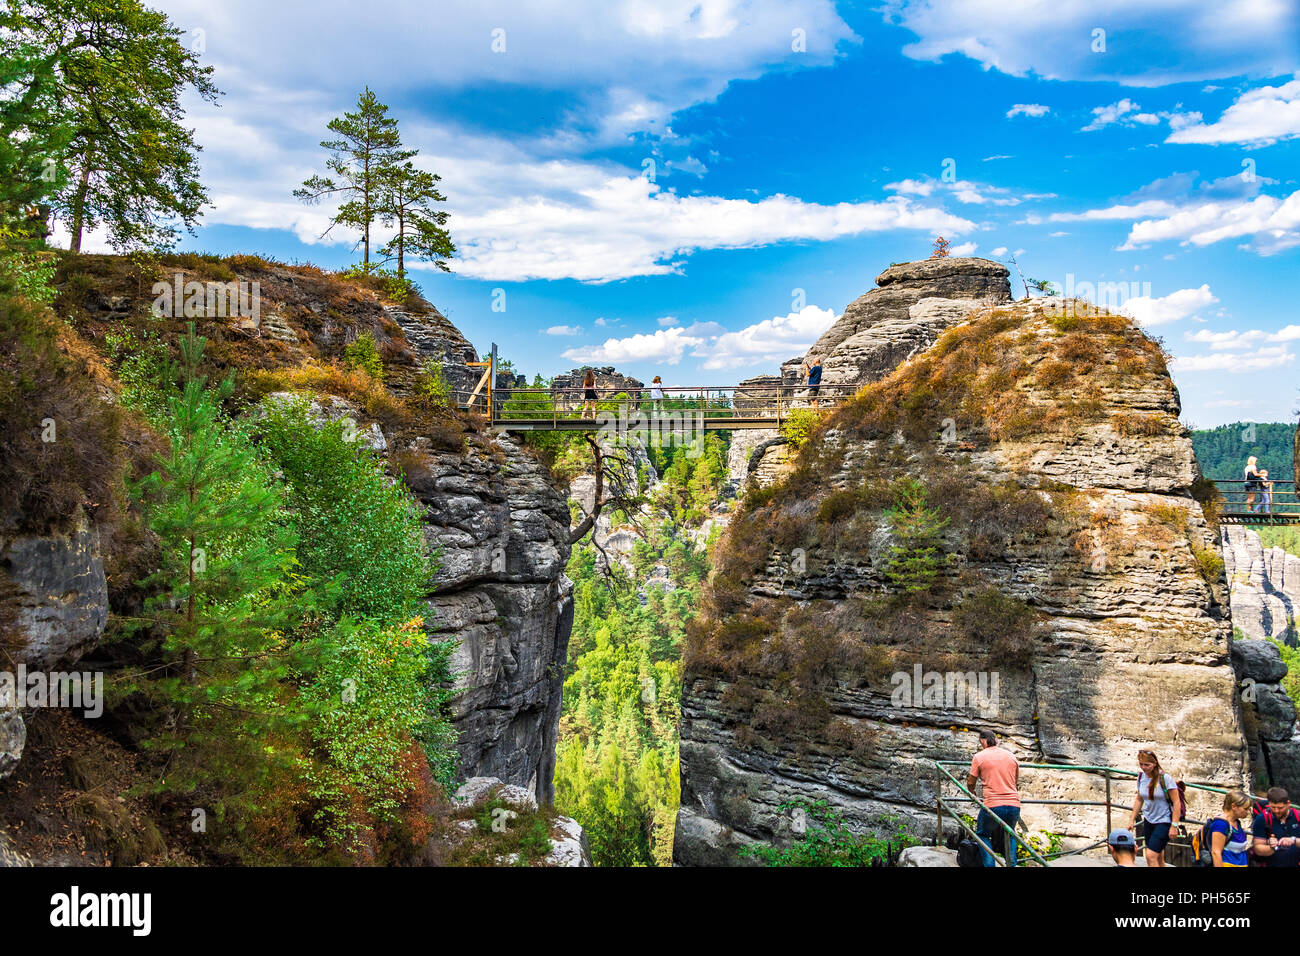 The Elbe Sandstone Mountains  is part of the Saxon Switzerland National Park in Germany - Stock Image